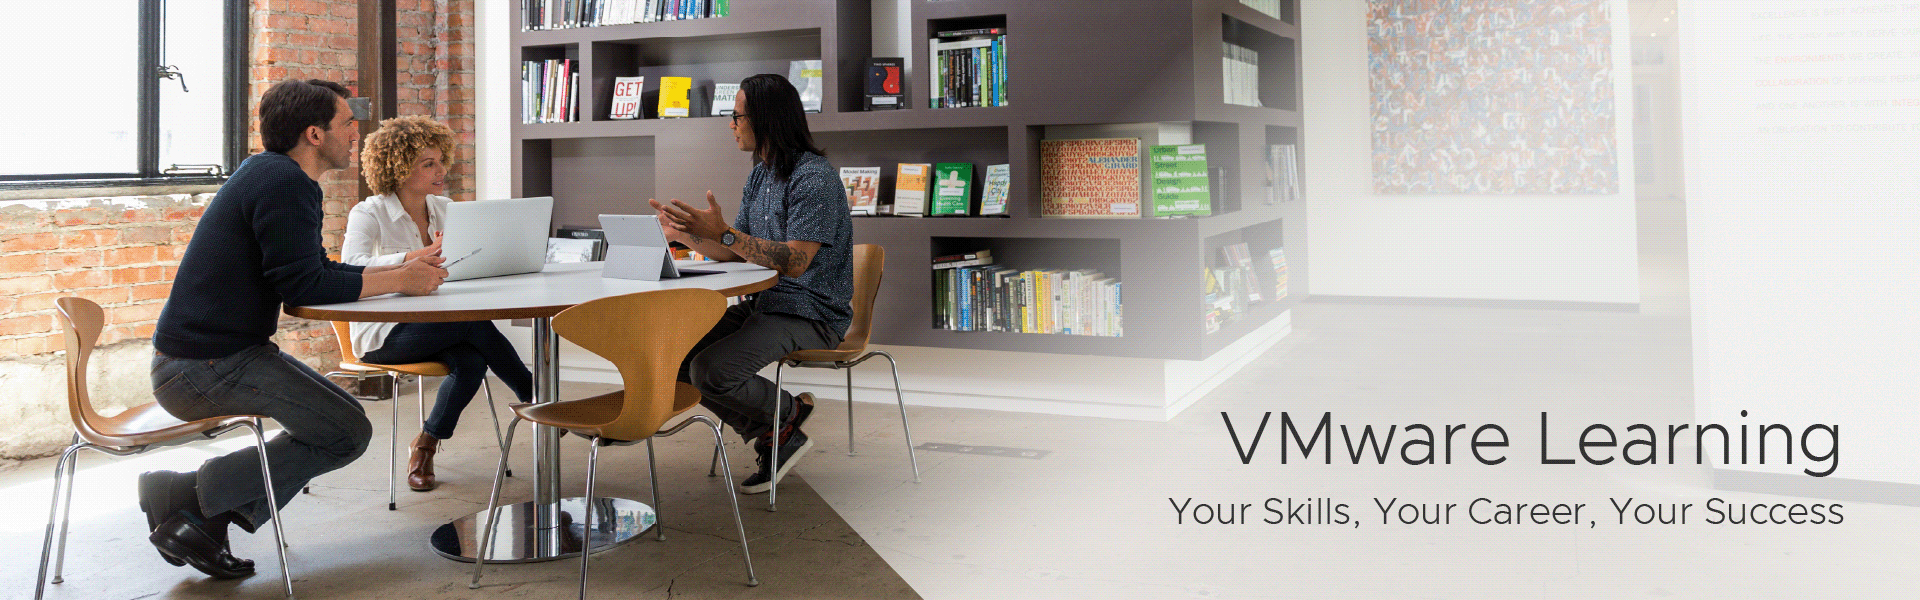 VVMware Learning. Your Skills, Your Career, Your Success